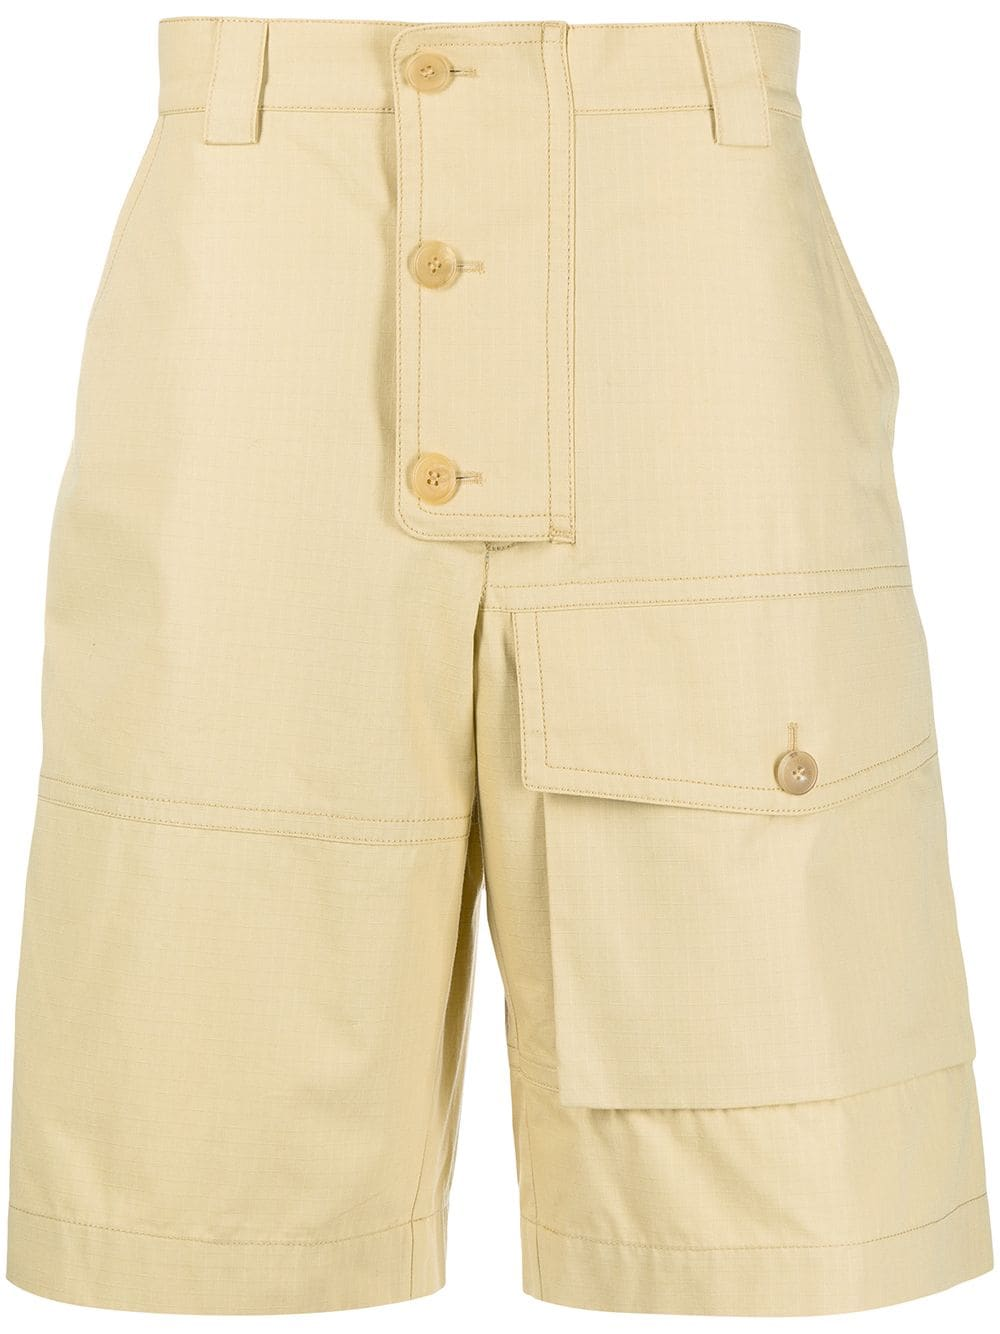 Yellow cotton Laurier cargo shorts  JACQUEMUS |  | 215PA08-107230